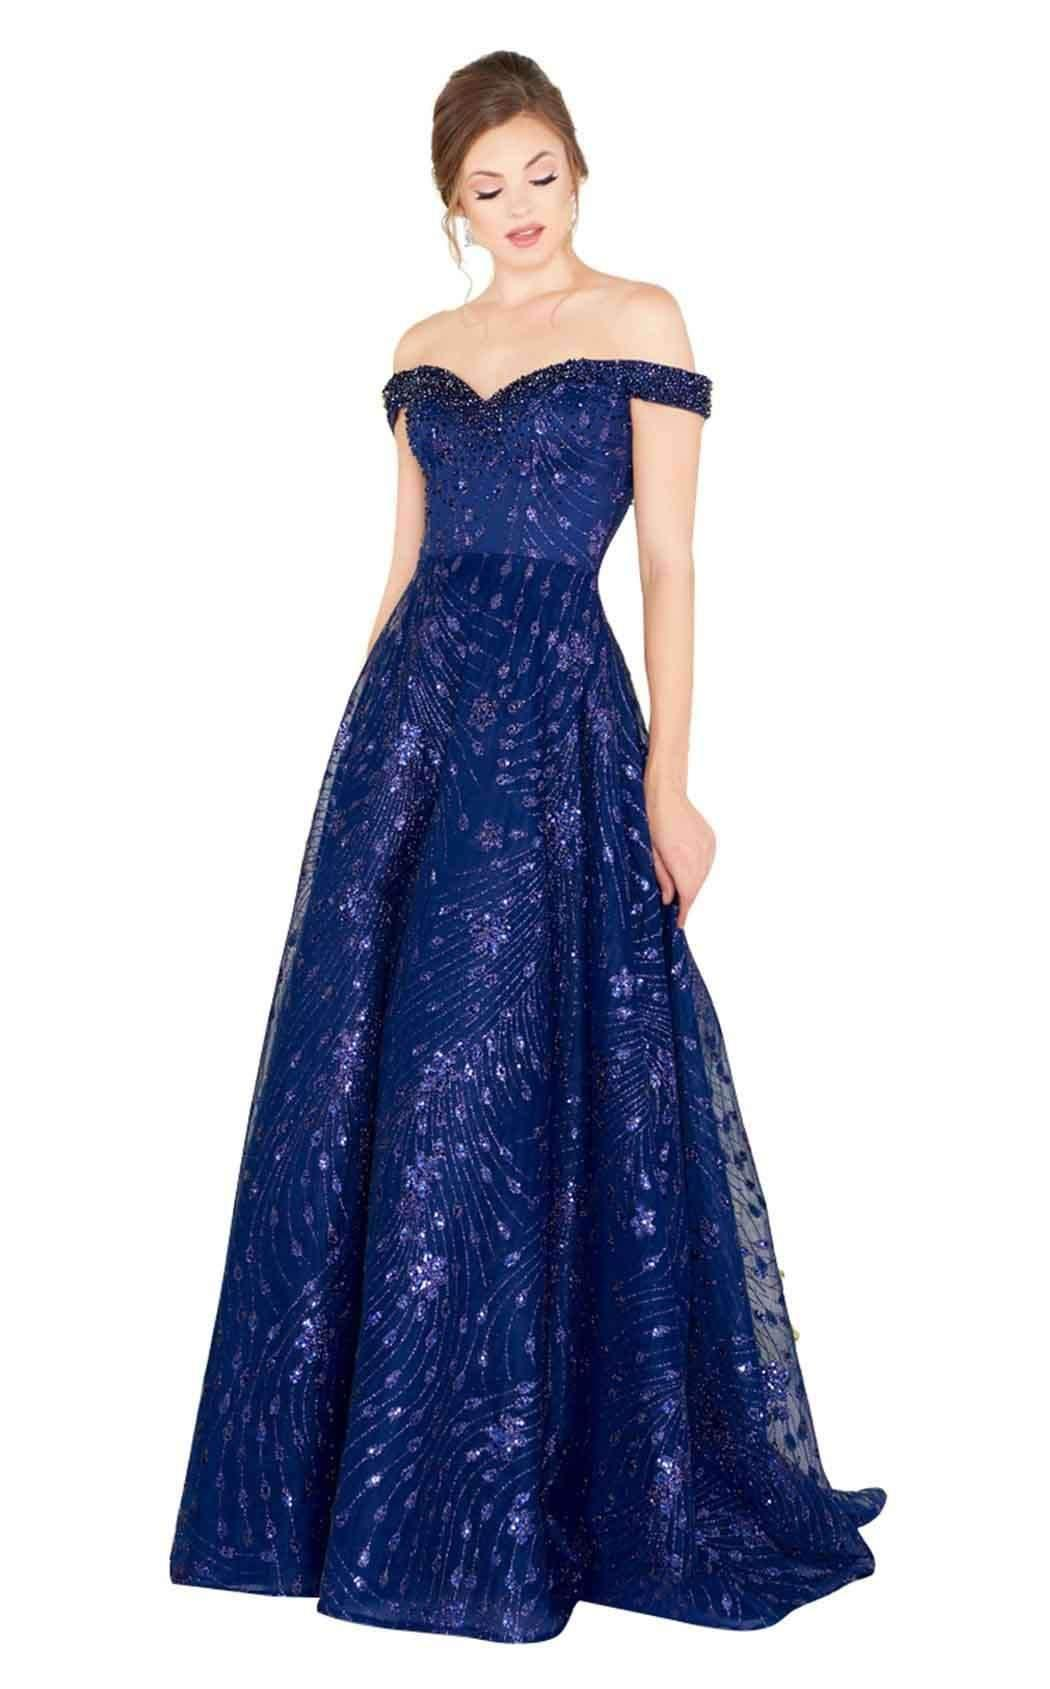 00b2841355 Lyst - Mac Duggal Couture Dresses Style 80675d in Blue - Save 13%